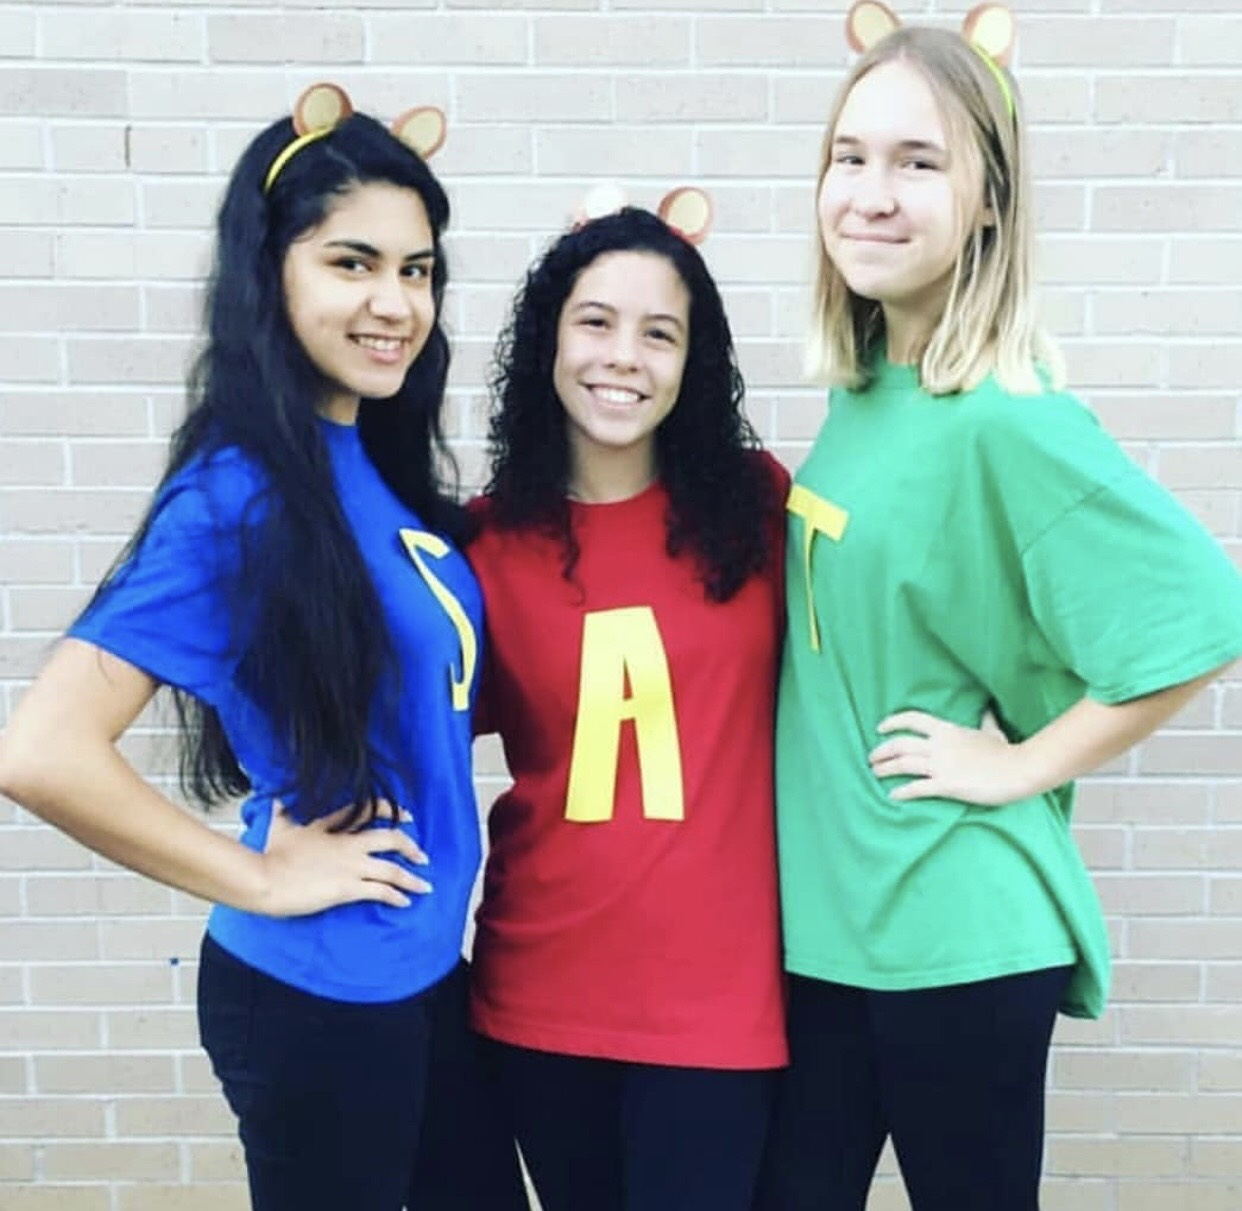 Left to right: Donna Cornejo, junior, Ana Reyes, junior, and Kassi Daniels, junior, dressed as Alvin and the Chipmunks on TV Tuesday.